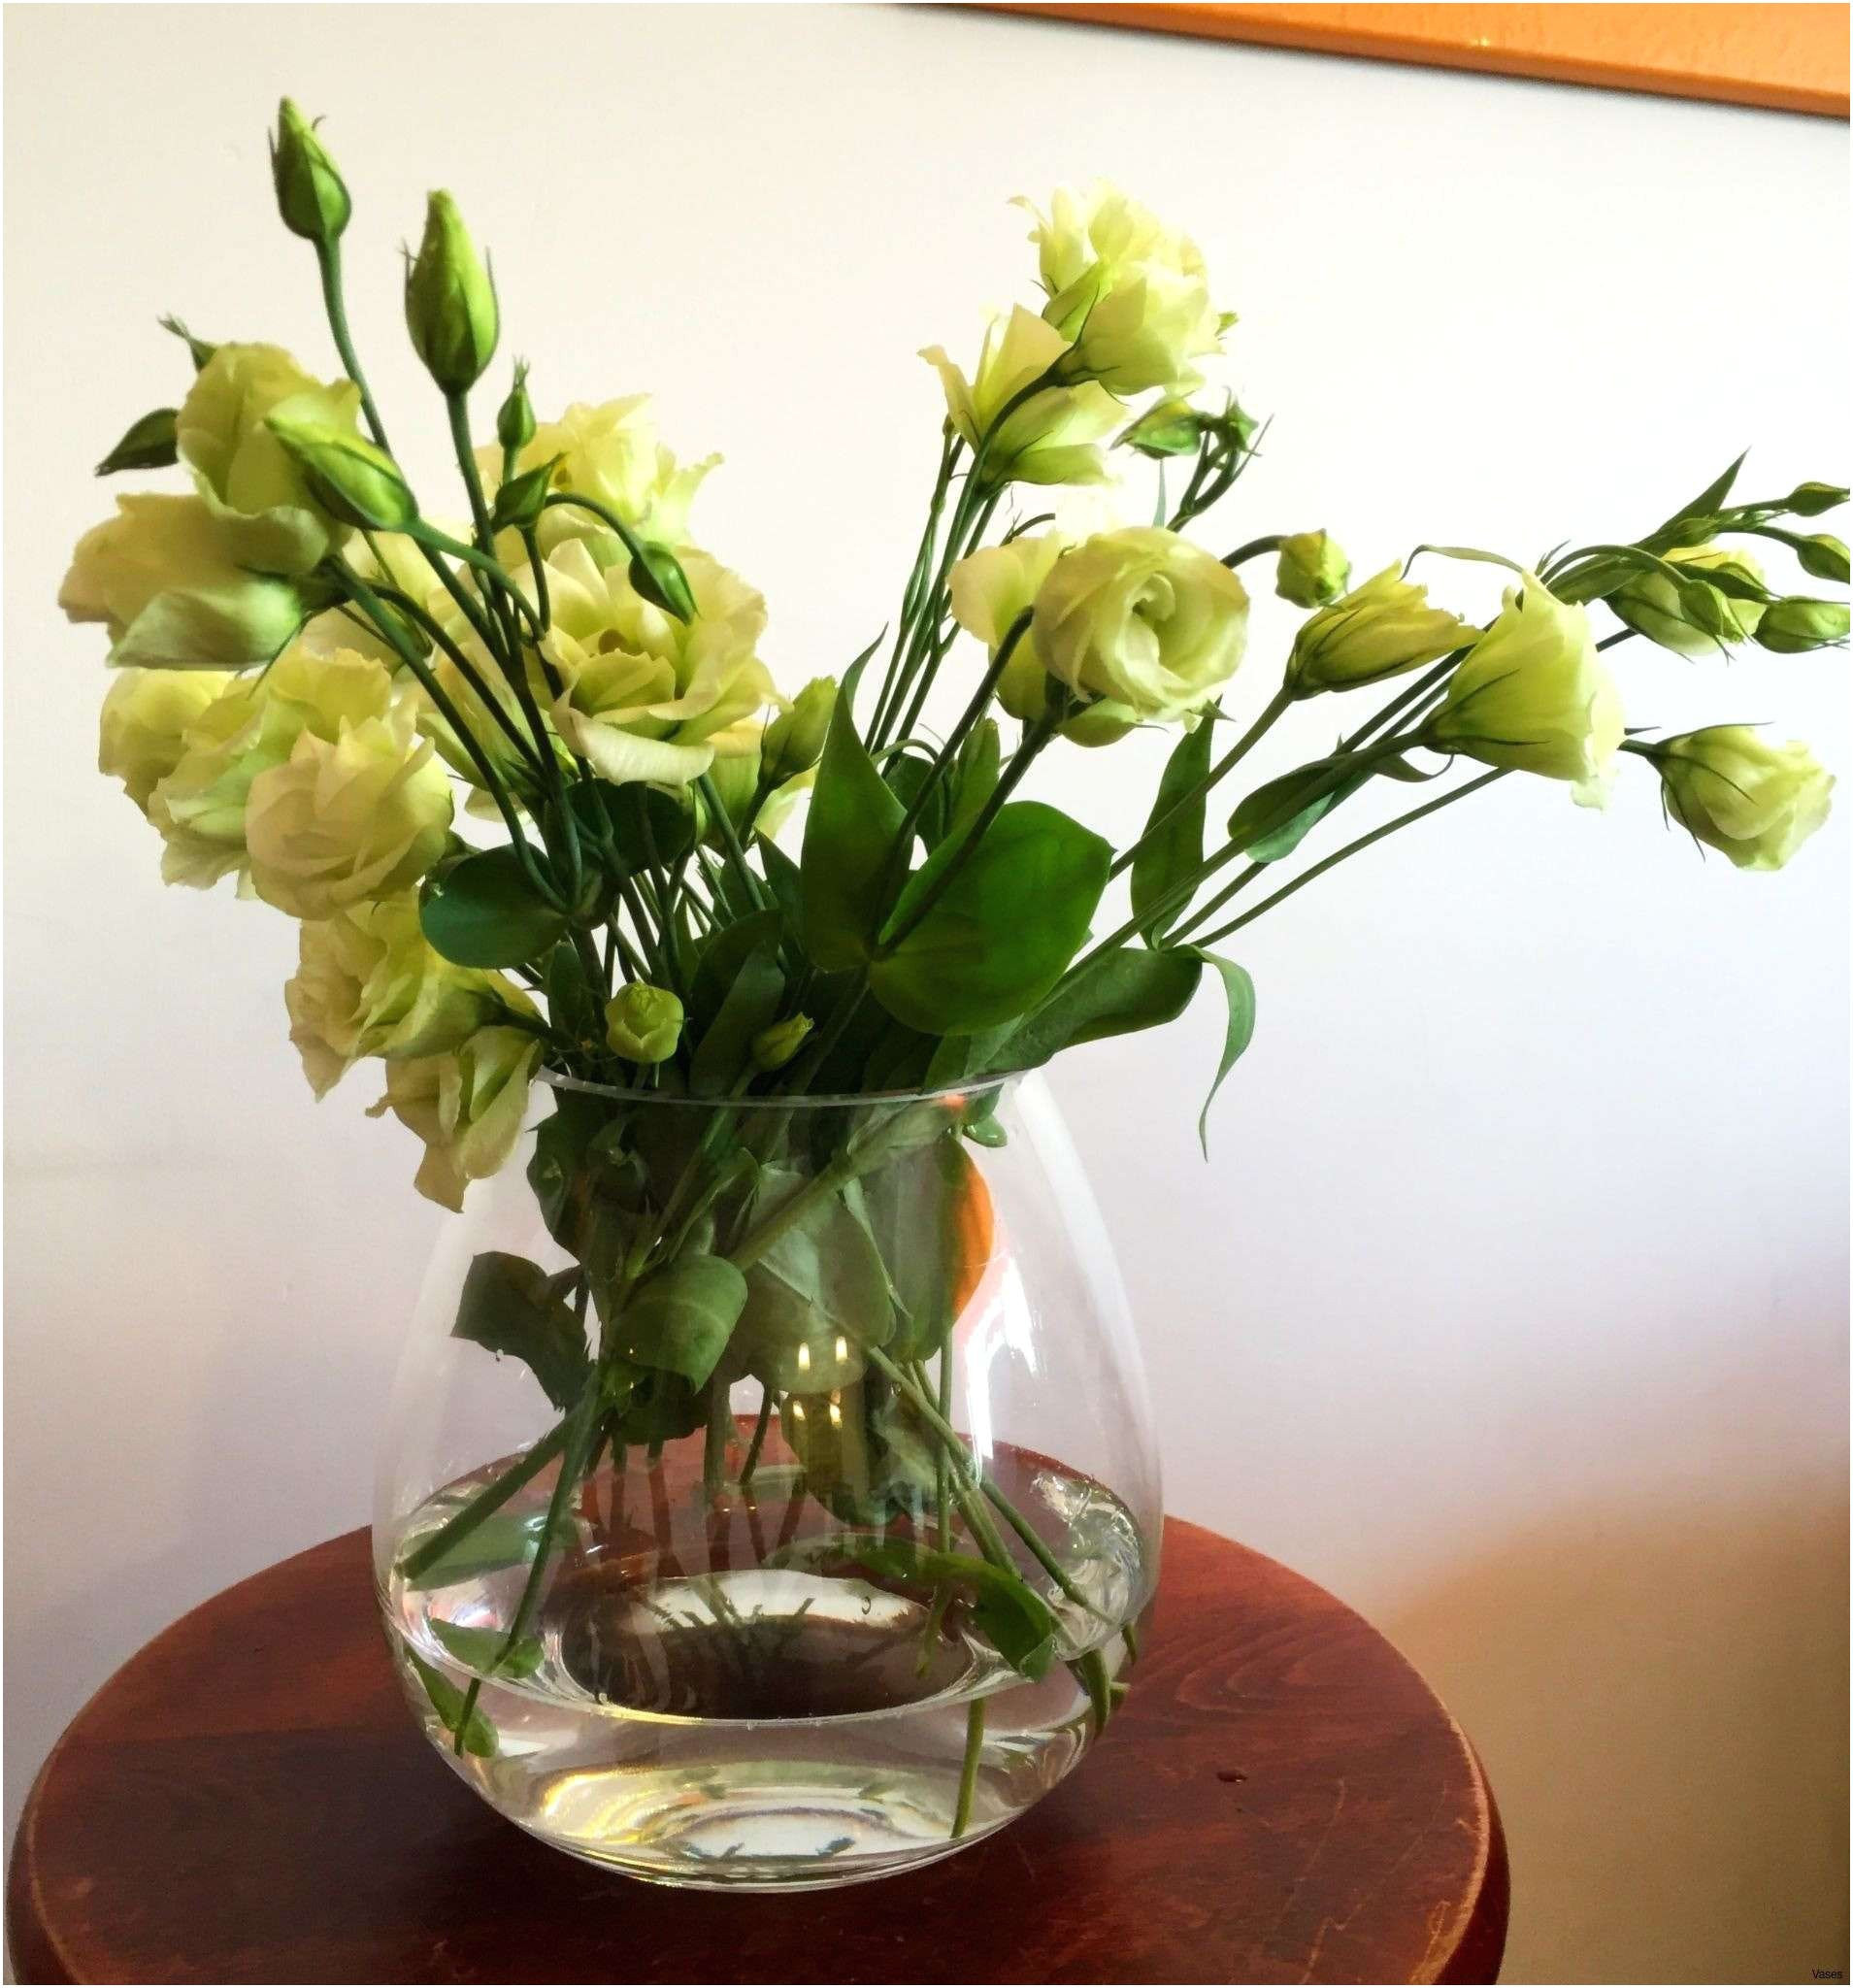 green glass flower vase of tall green glass vase image tiger height awful flower vase table 04h for tall green glass vase image tiger height awful flower vase table 04h vases tablei 0d clipart